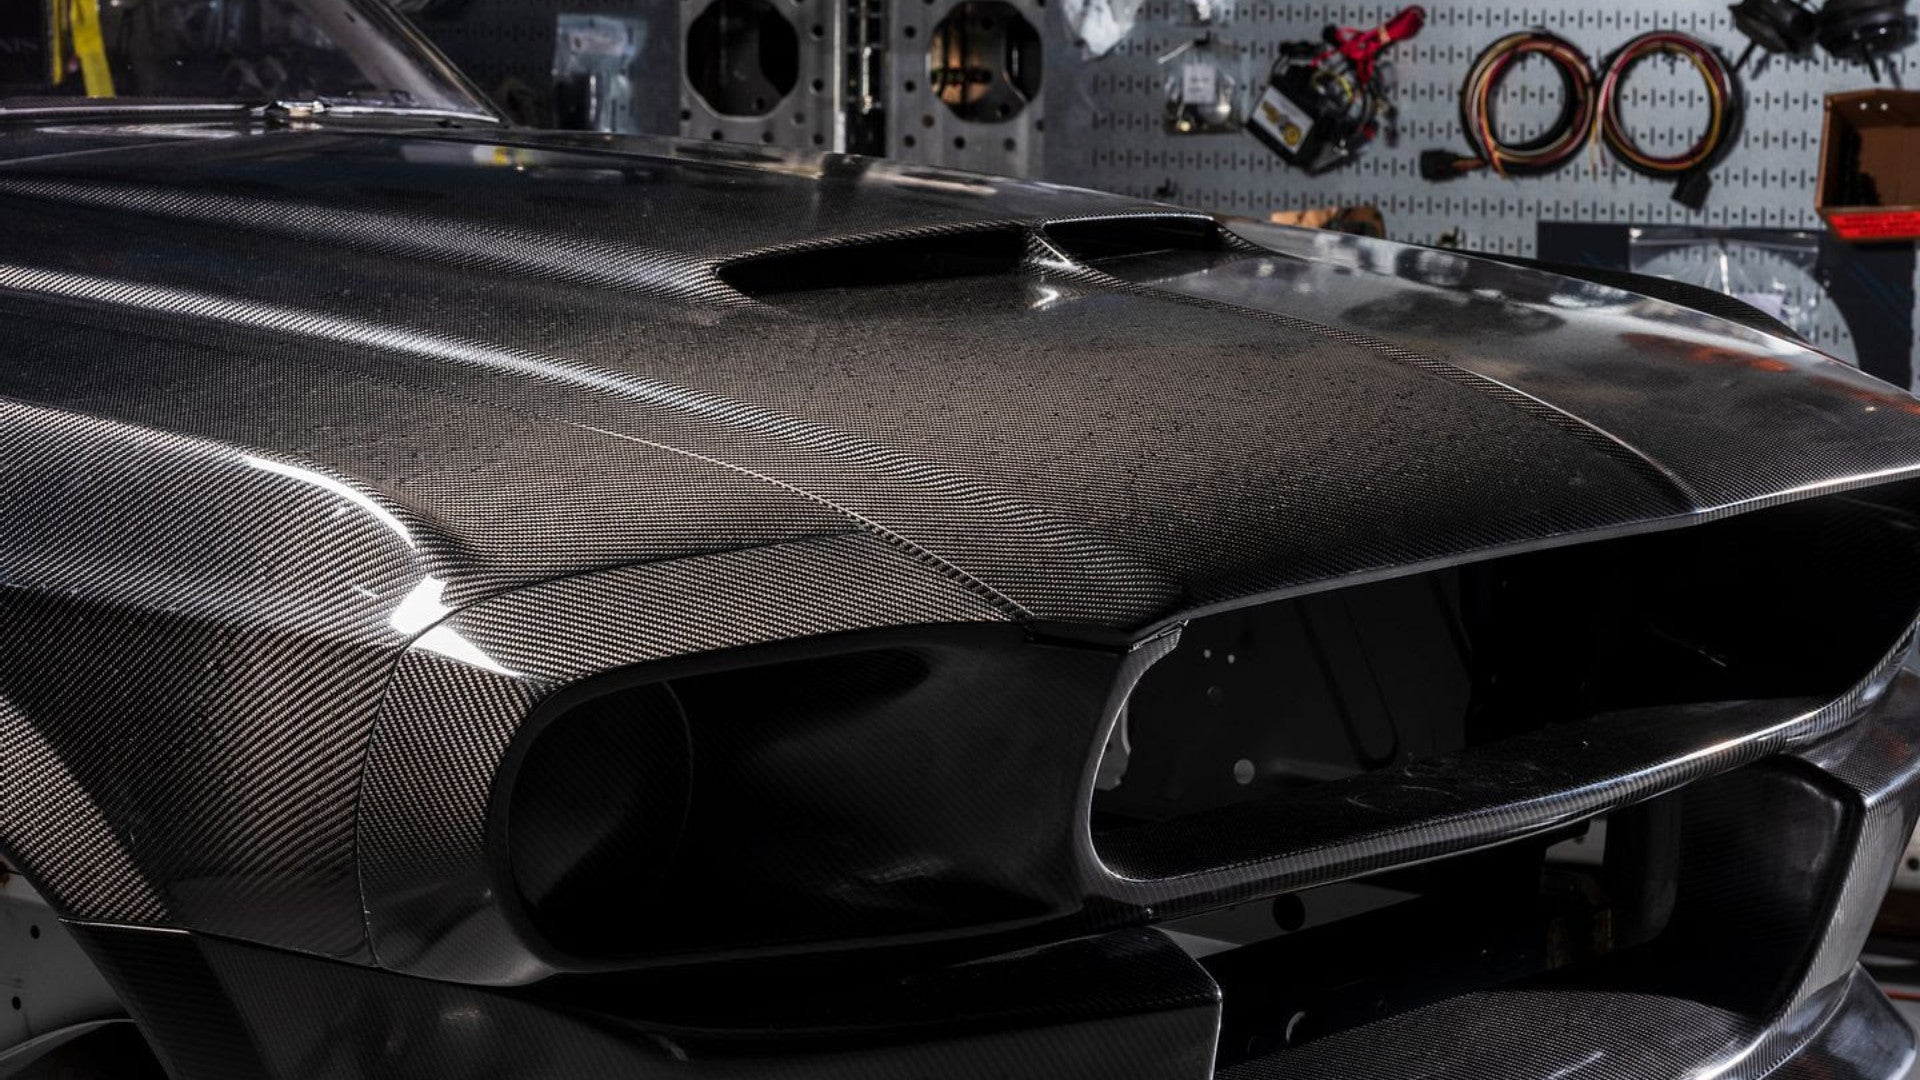 This Carbon Bodied 1967 Ford Mustang Shelby Gt500 Recreation Will Set You Back 300 000